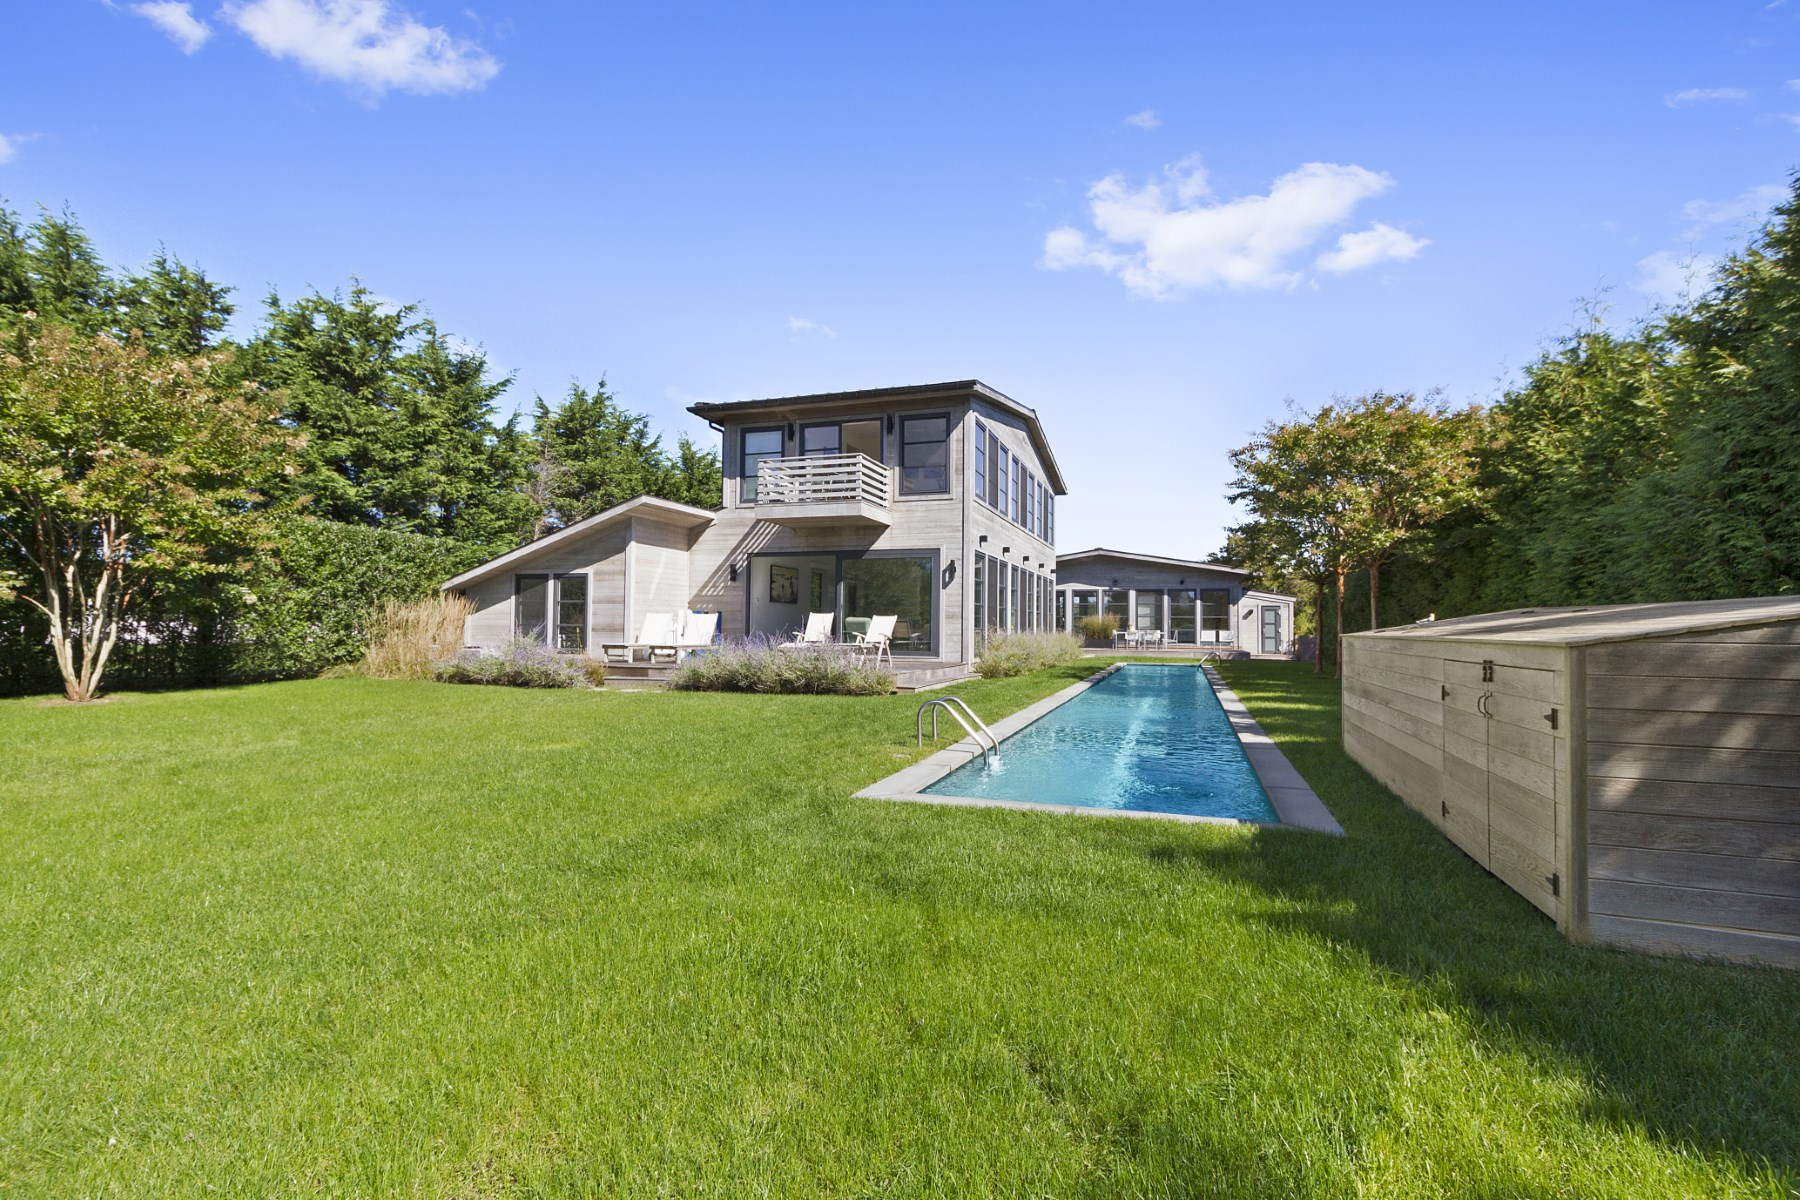 Maison unifamiliale pour l Vente à Modern Compound, Immediate Ocean Access 108 Town Line Road Sagaponack South, Sagaponack, New York, 11962 États-Unis